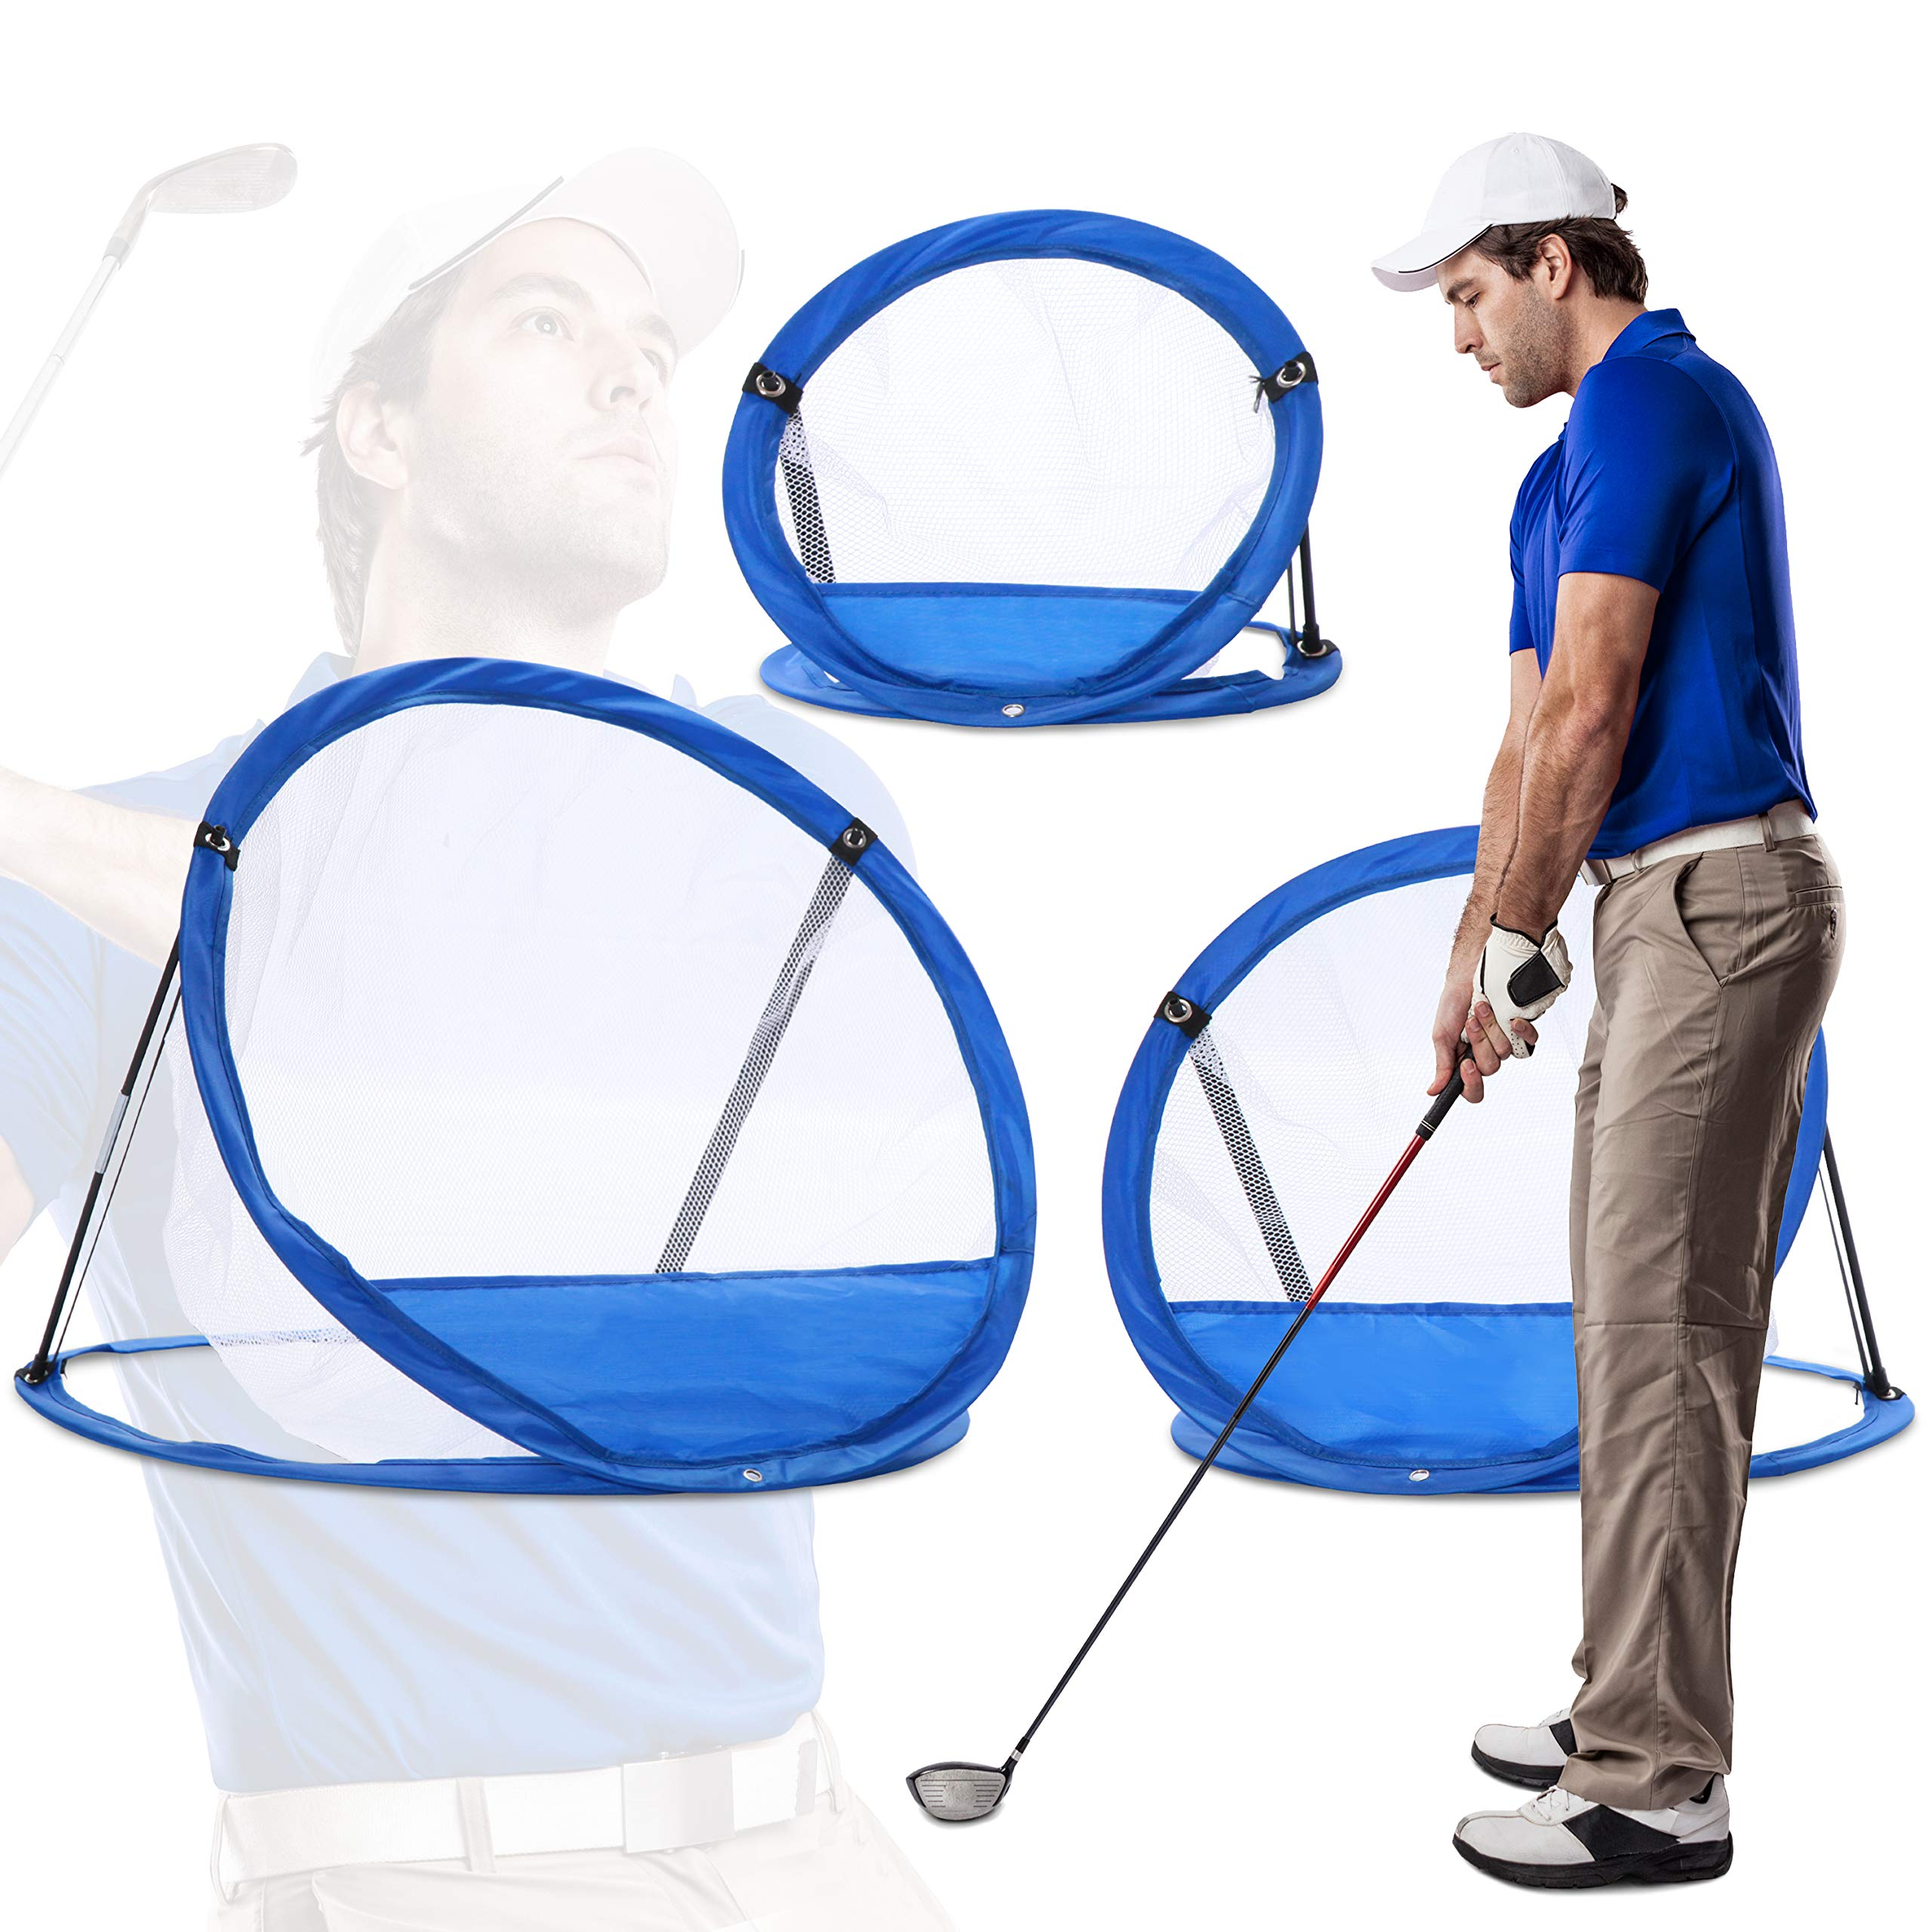 Tri Great USA CORP Golf Net Practice Equipment, Training Gear & Aids   Home, Office Sport Games, Gifts for Husband/Boyfriend (3-Pc. Combo Set)